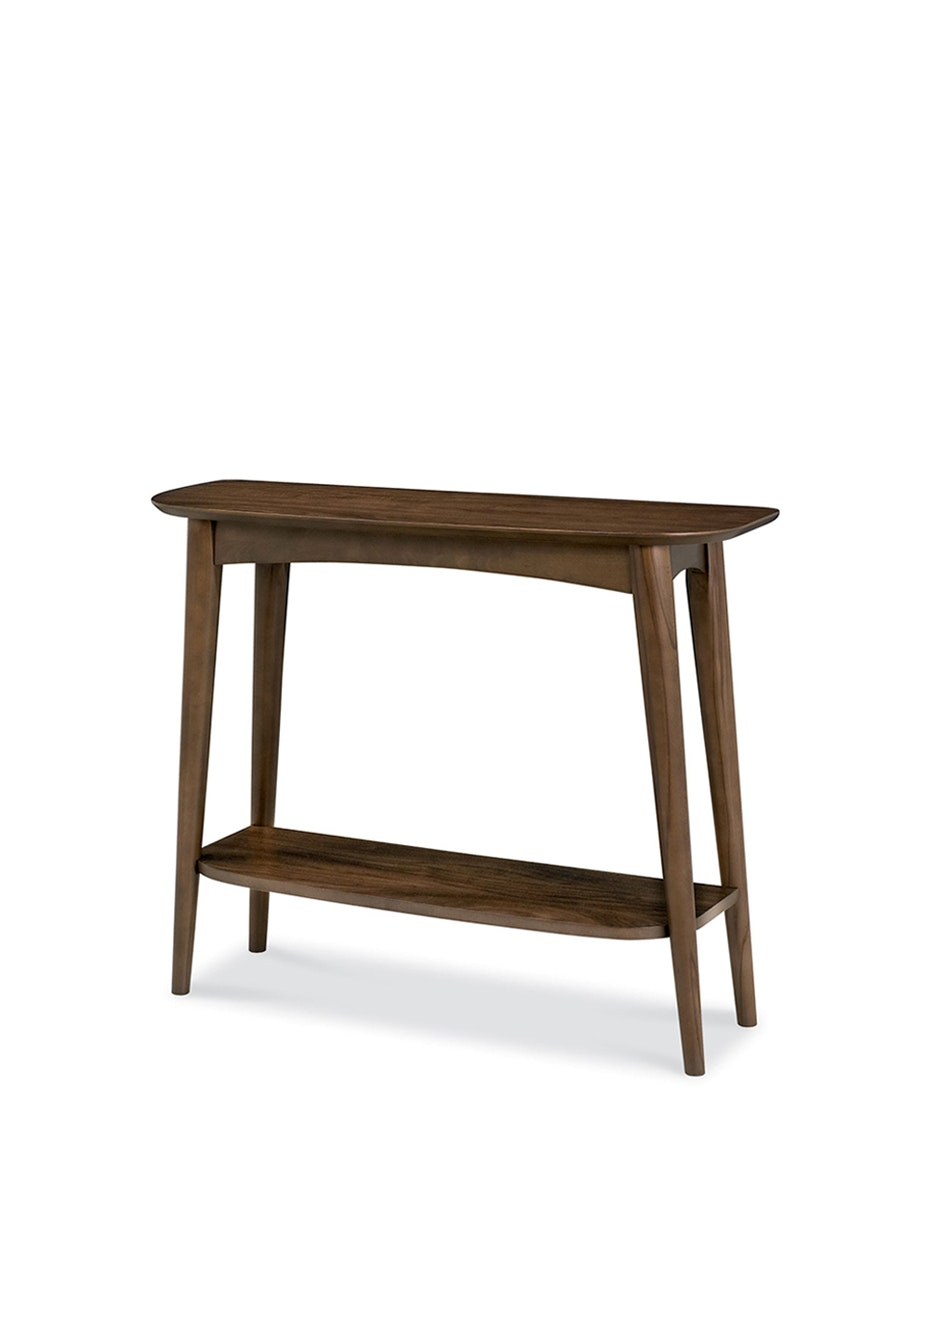 Furniture By Design - Oslo Console/Desk- Walnut Veneers and Solid Walnut